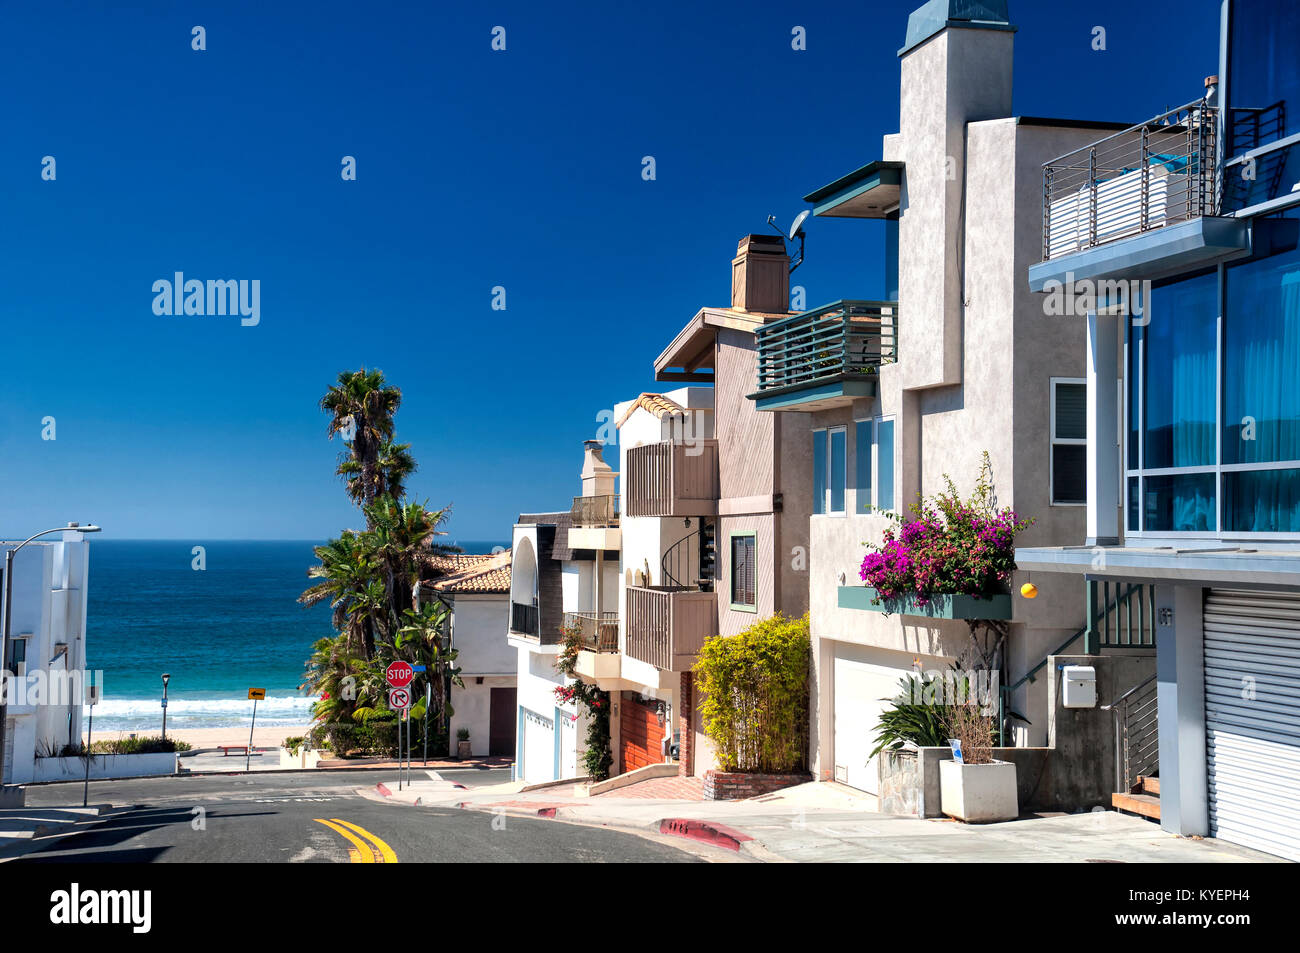 Modern homes lining a street near Manhattan Beach California on a sunny blue sky day. - Stock Image